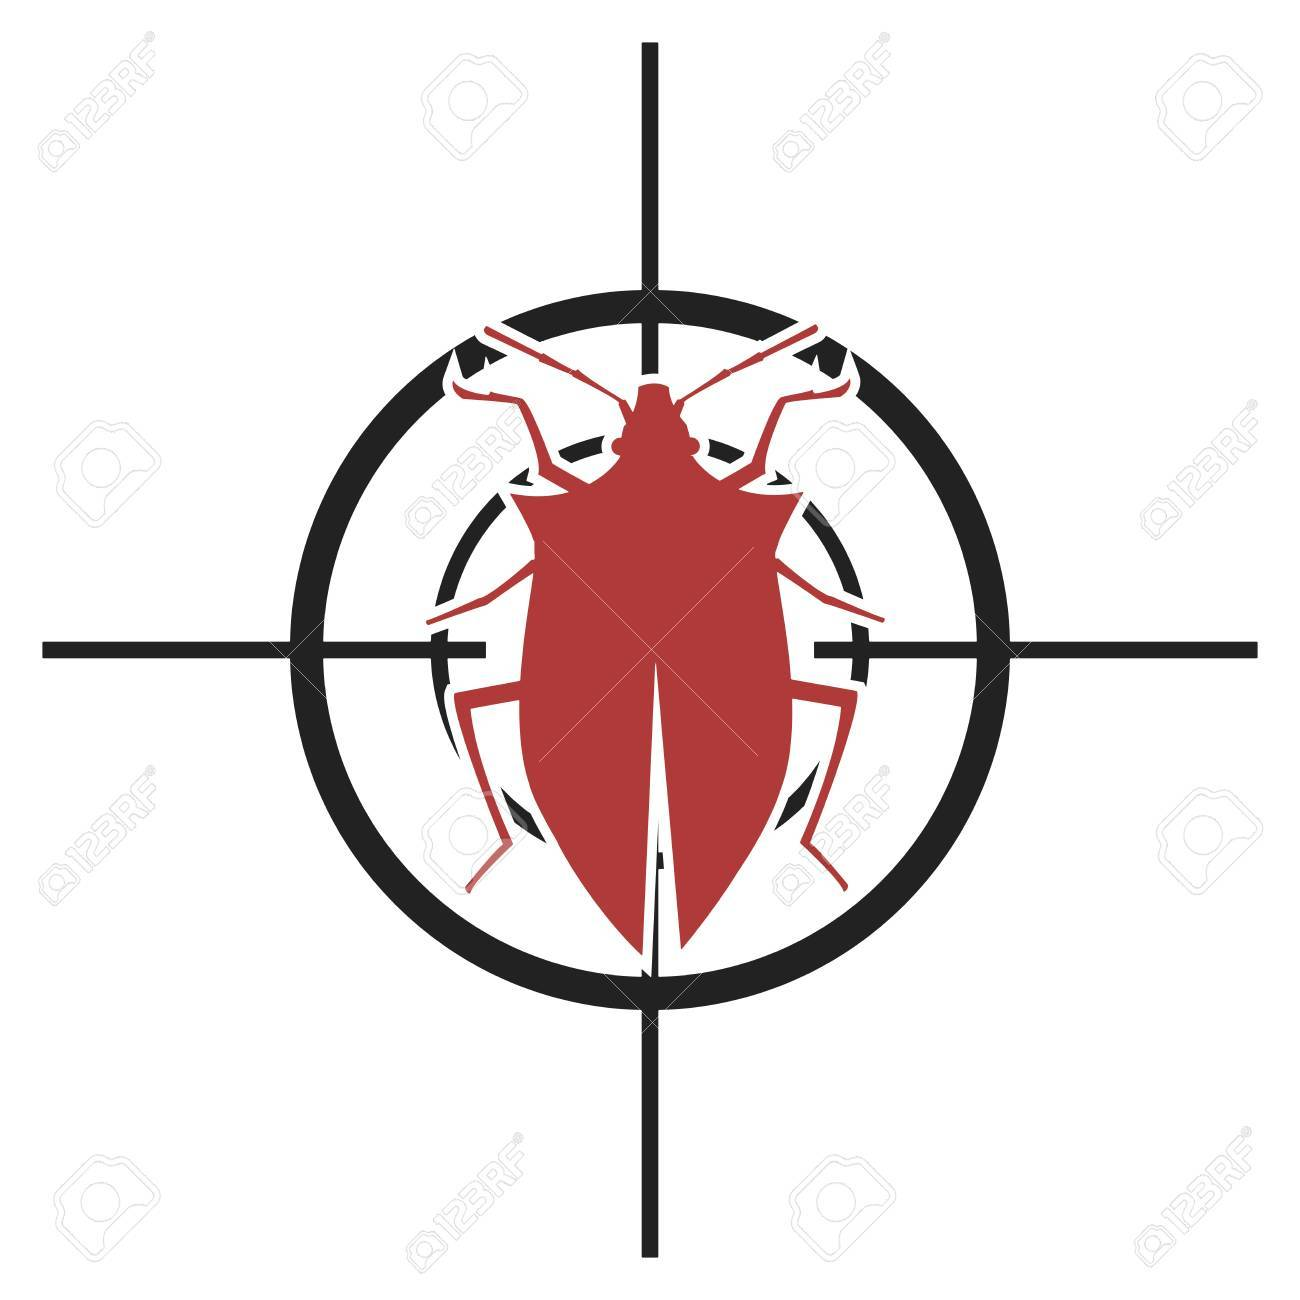 Illustration Of A Scope With A Bug Symbol For Pest Control Royalty